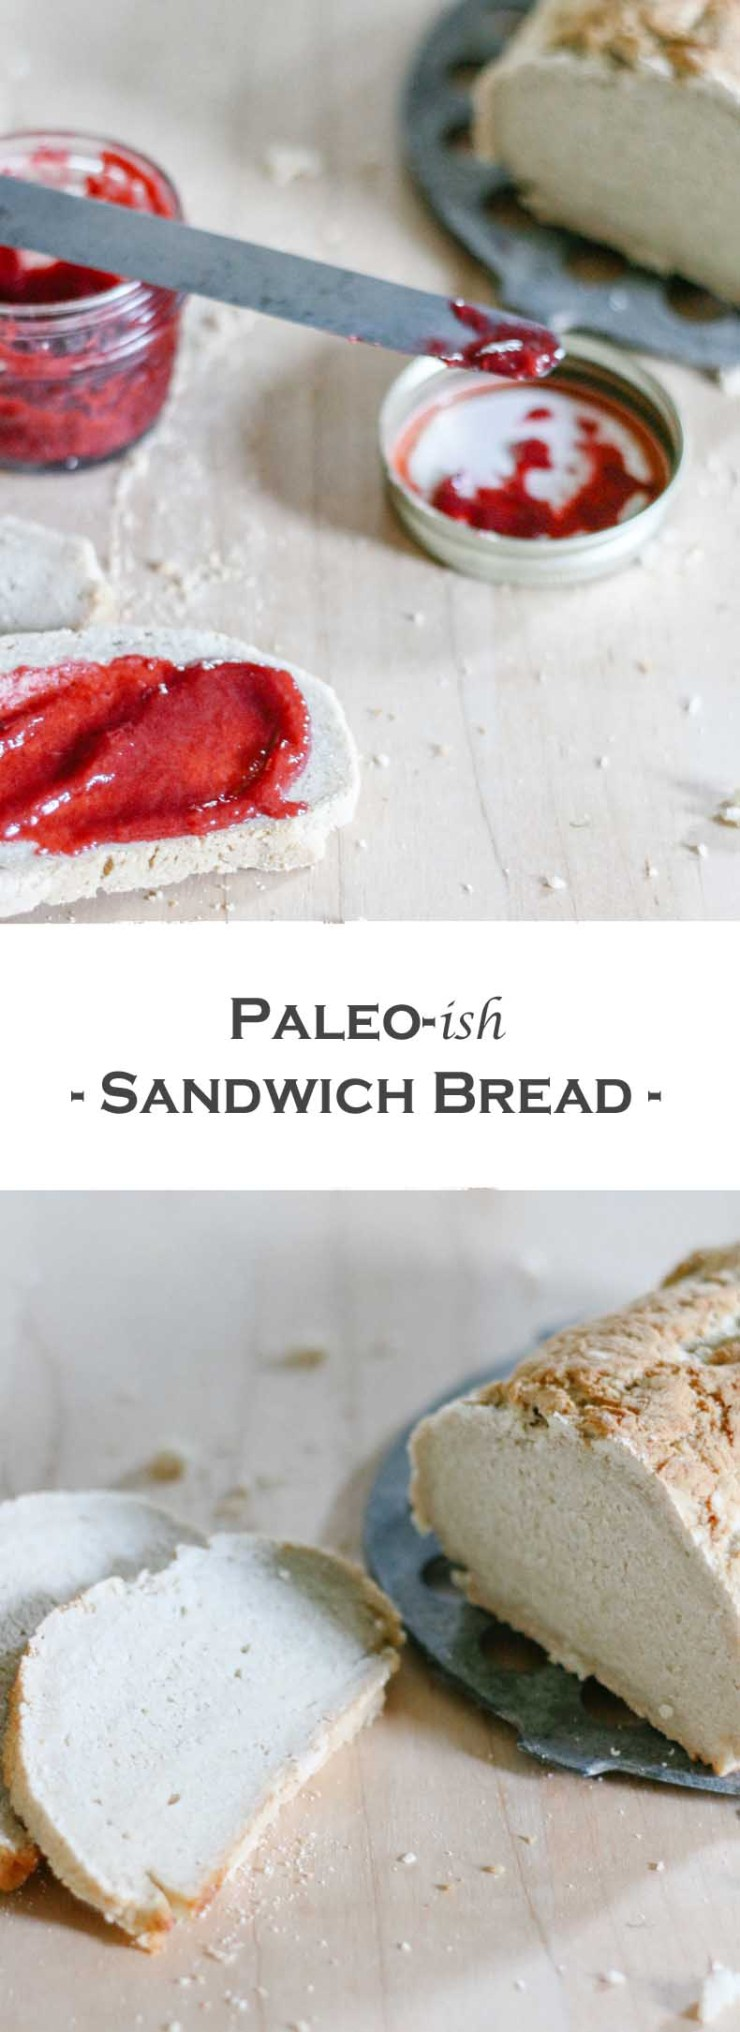 This wonderfully delicious every-day Paleo-ish Sandwich Bread is easier to make and less labour-intensive than regular bread! It's also gluten-, egg-, and dairy-free!